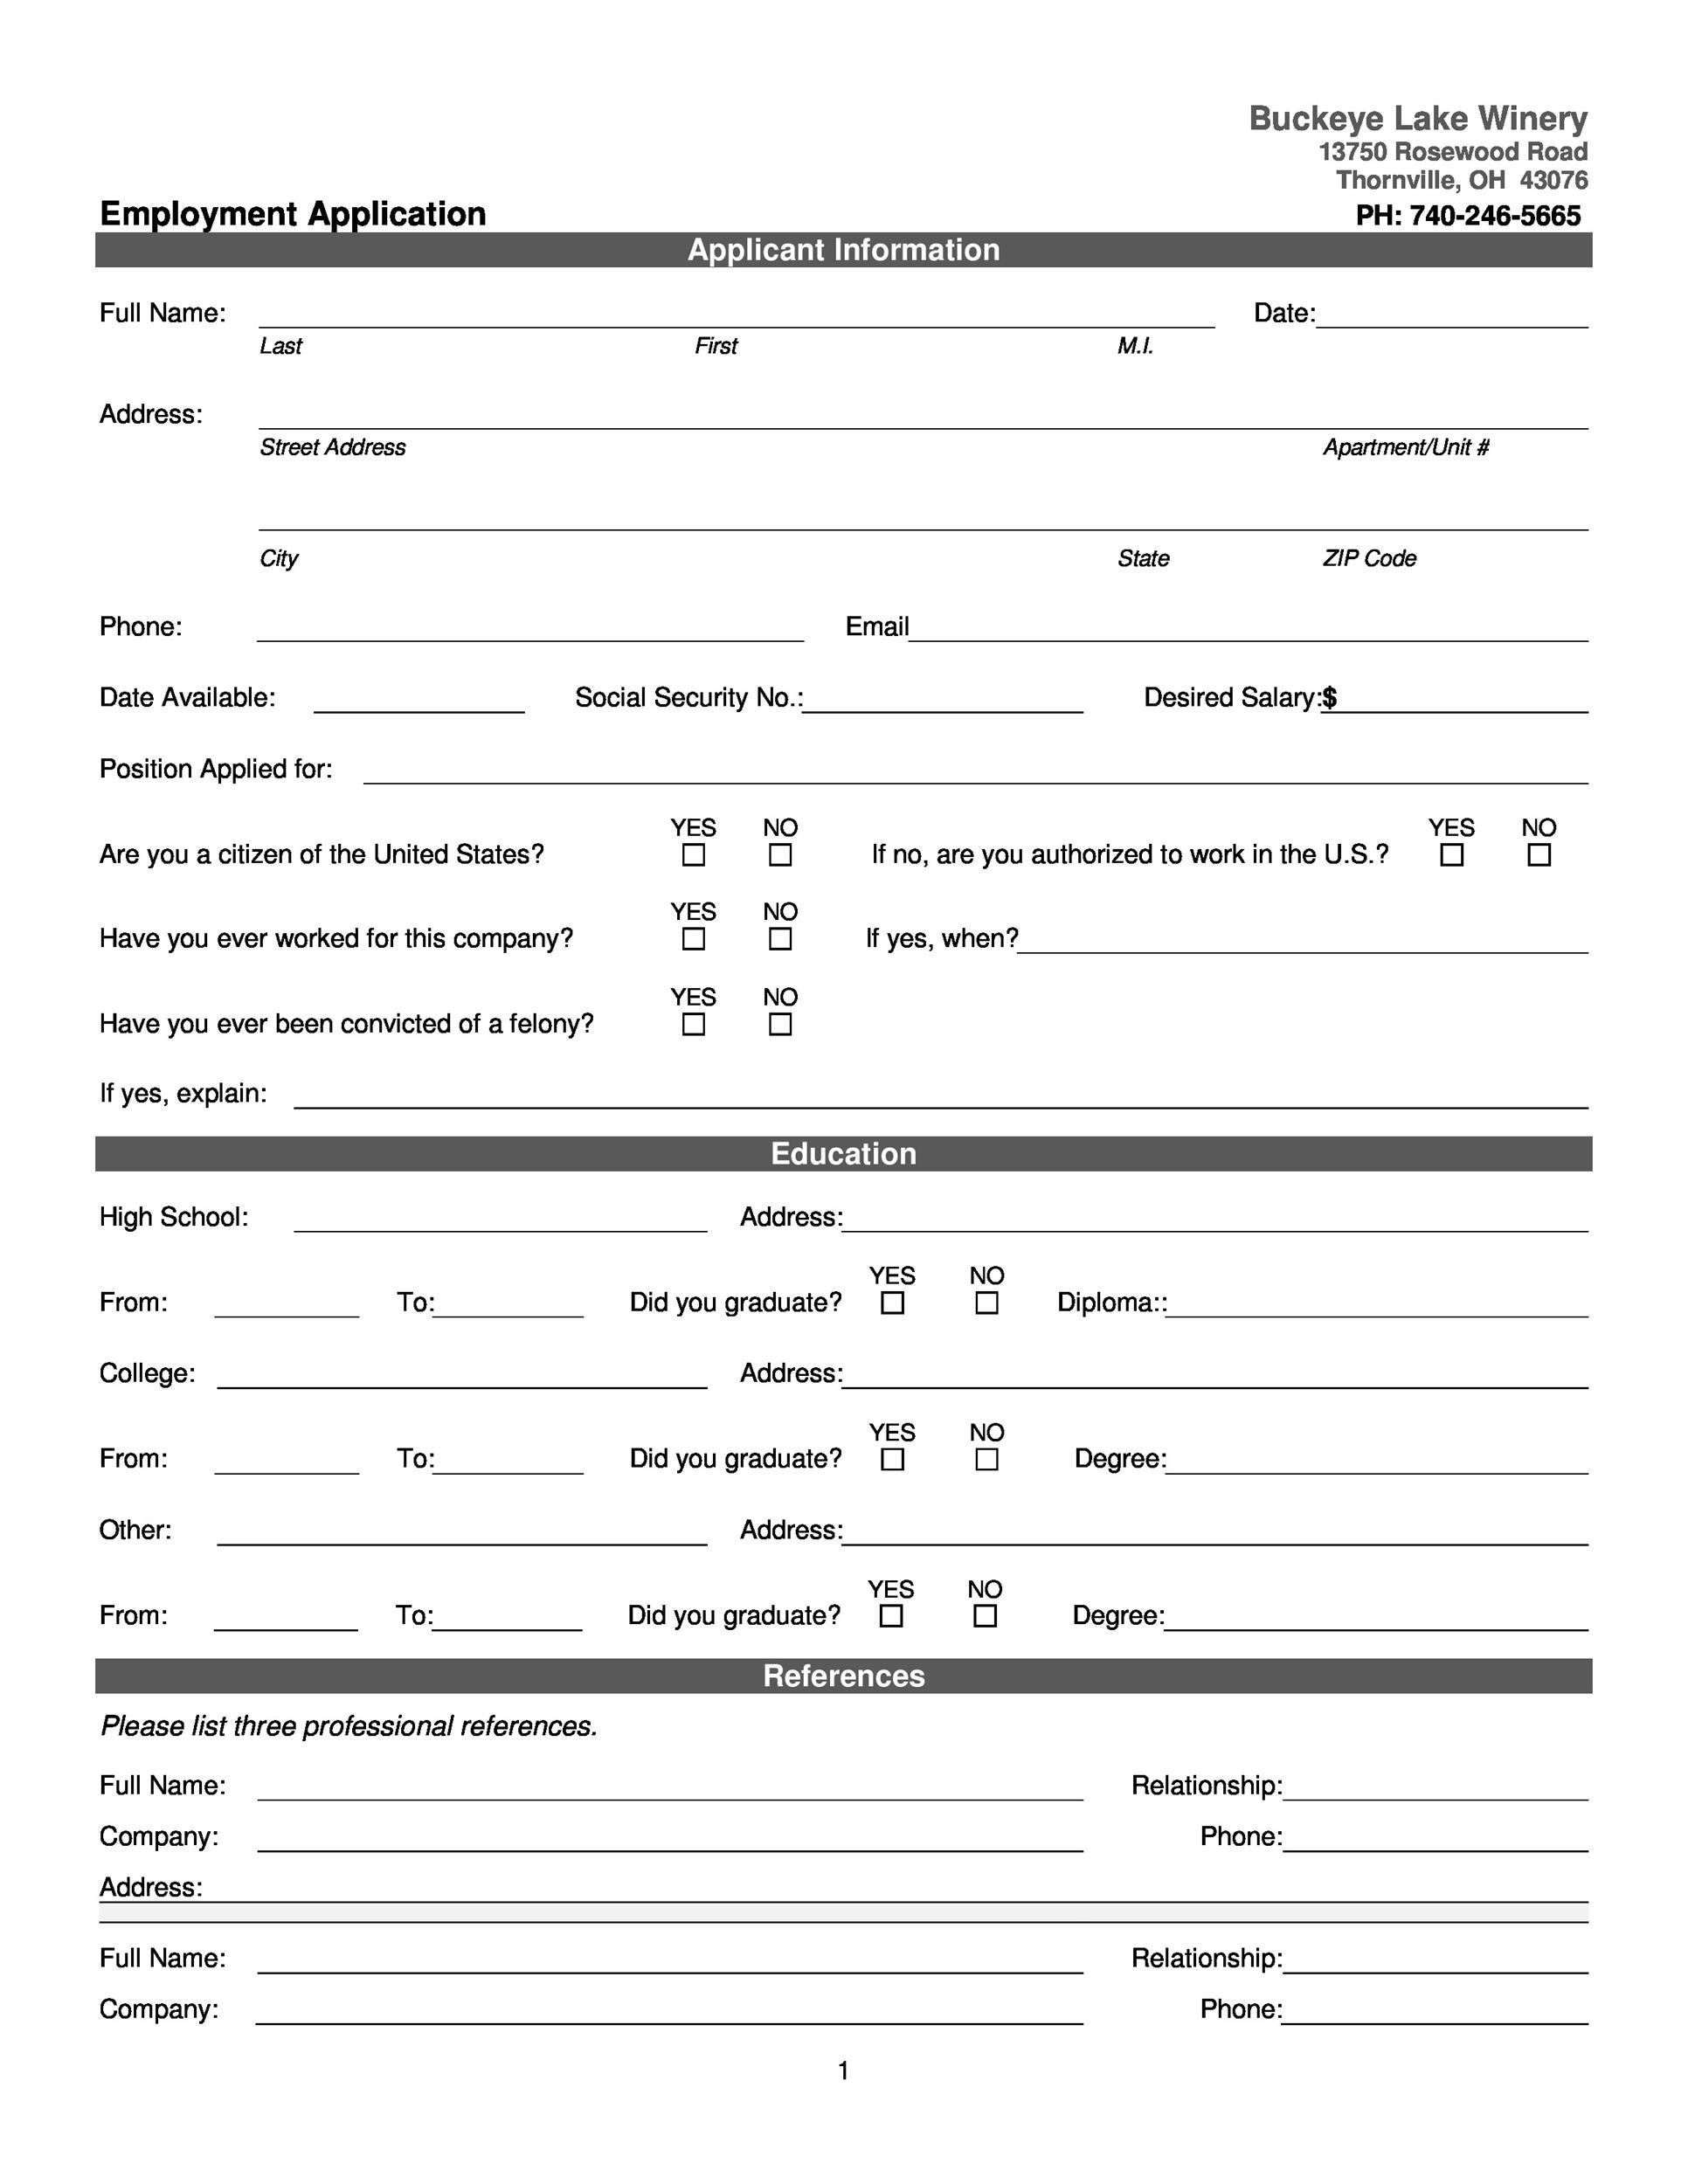 Free employment application template 38